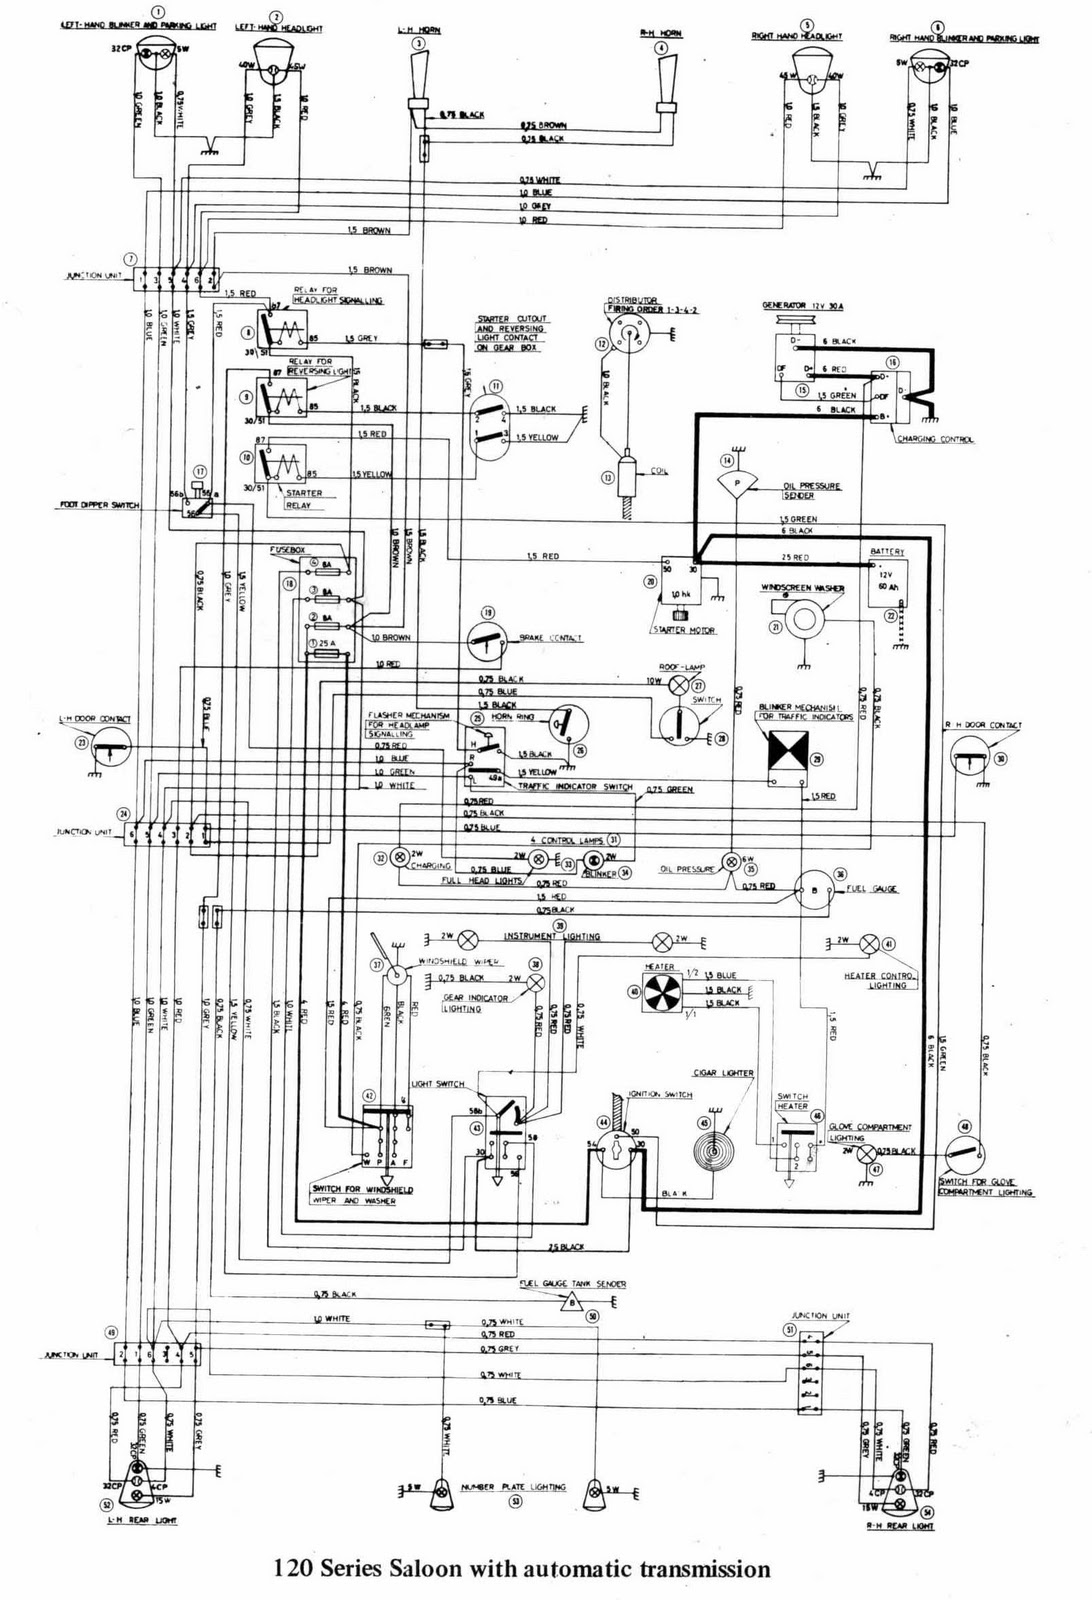 small resolution of wiring diagram 1998 volvo v70 glt wiring diagram third level rh 17 19 13 jacobwinterstein com 2001 volvo s60 engine diagram volvo s80 wiring diagram